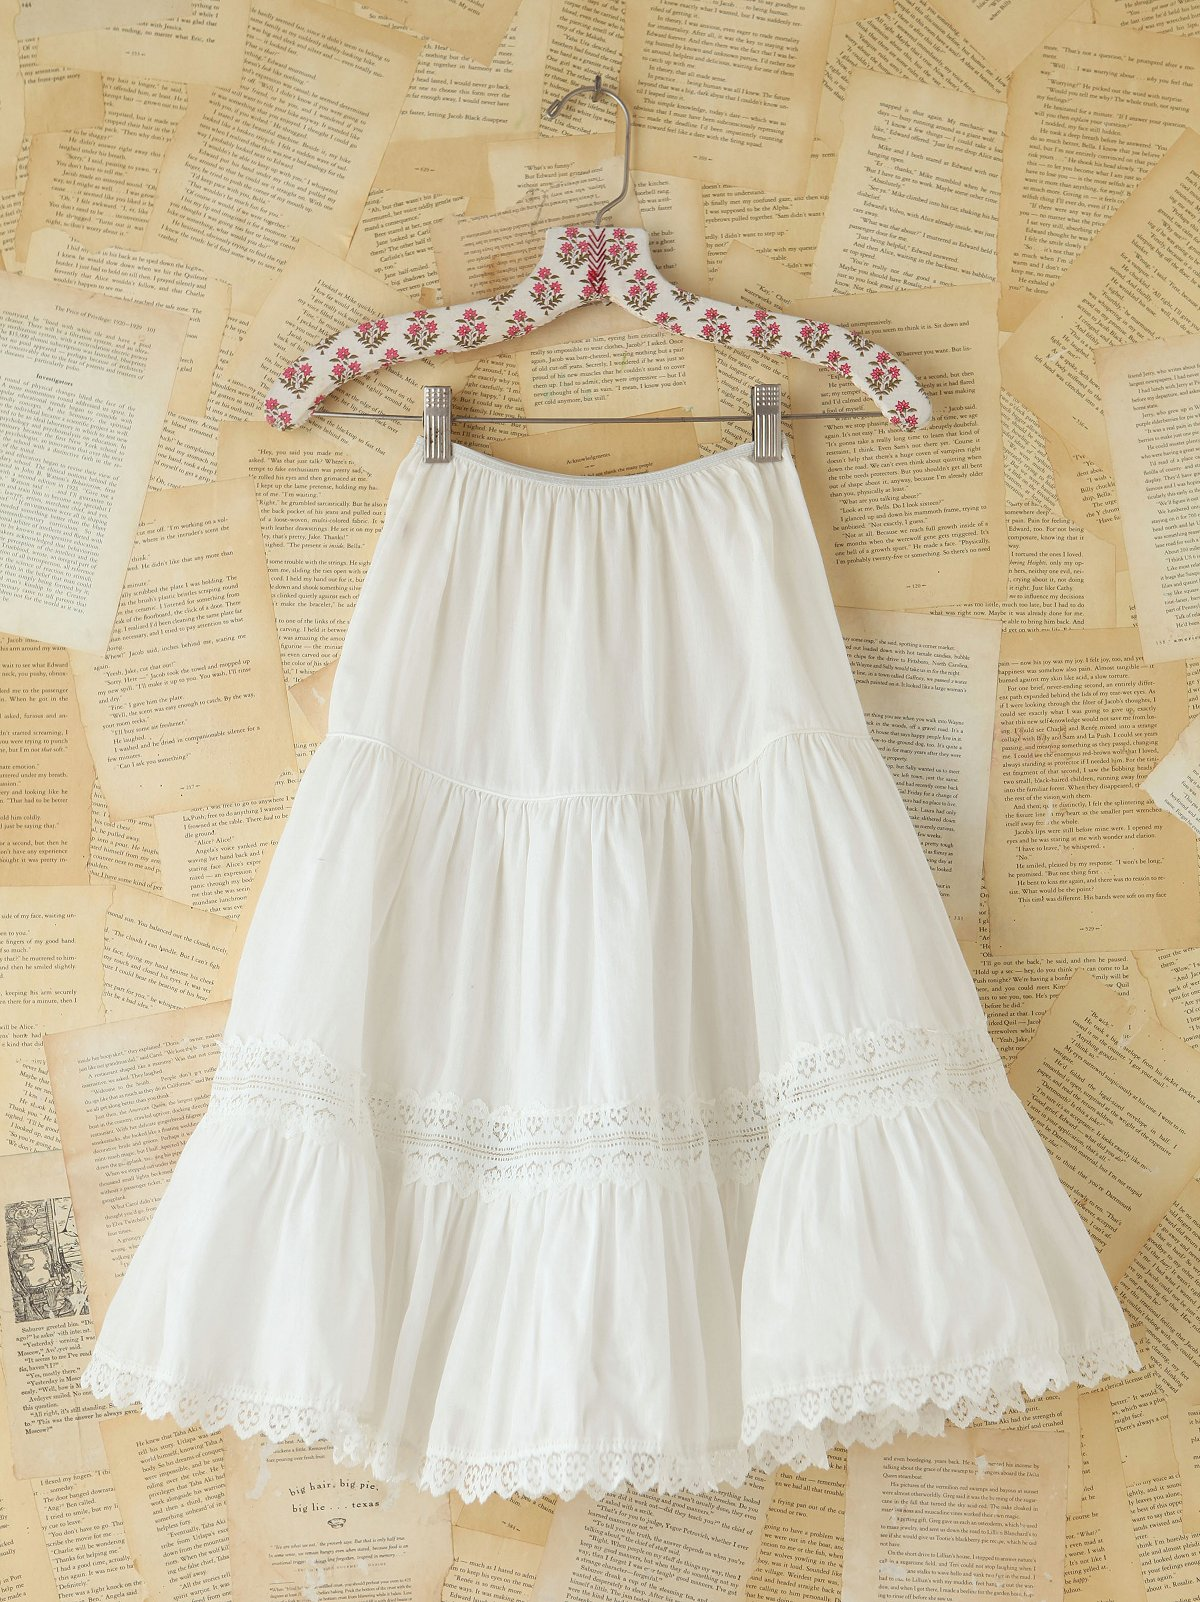 Vintage 1950s Cotton Skirt